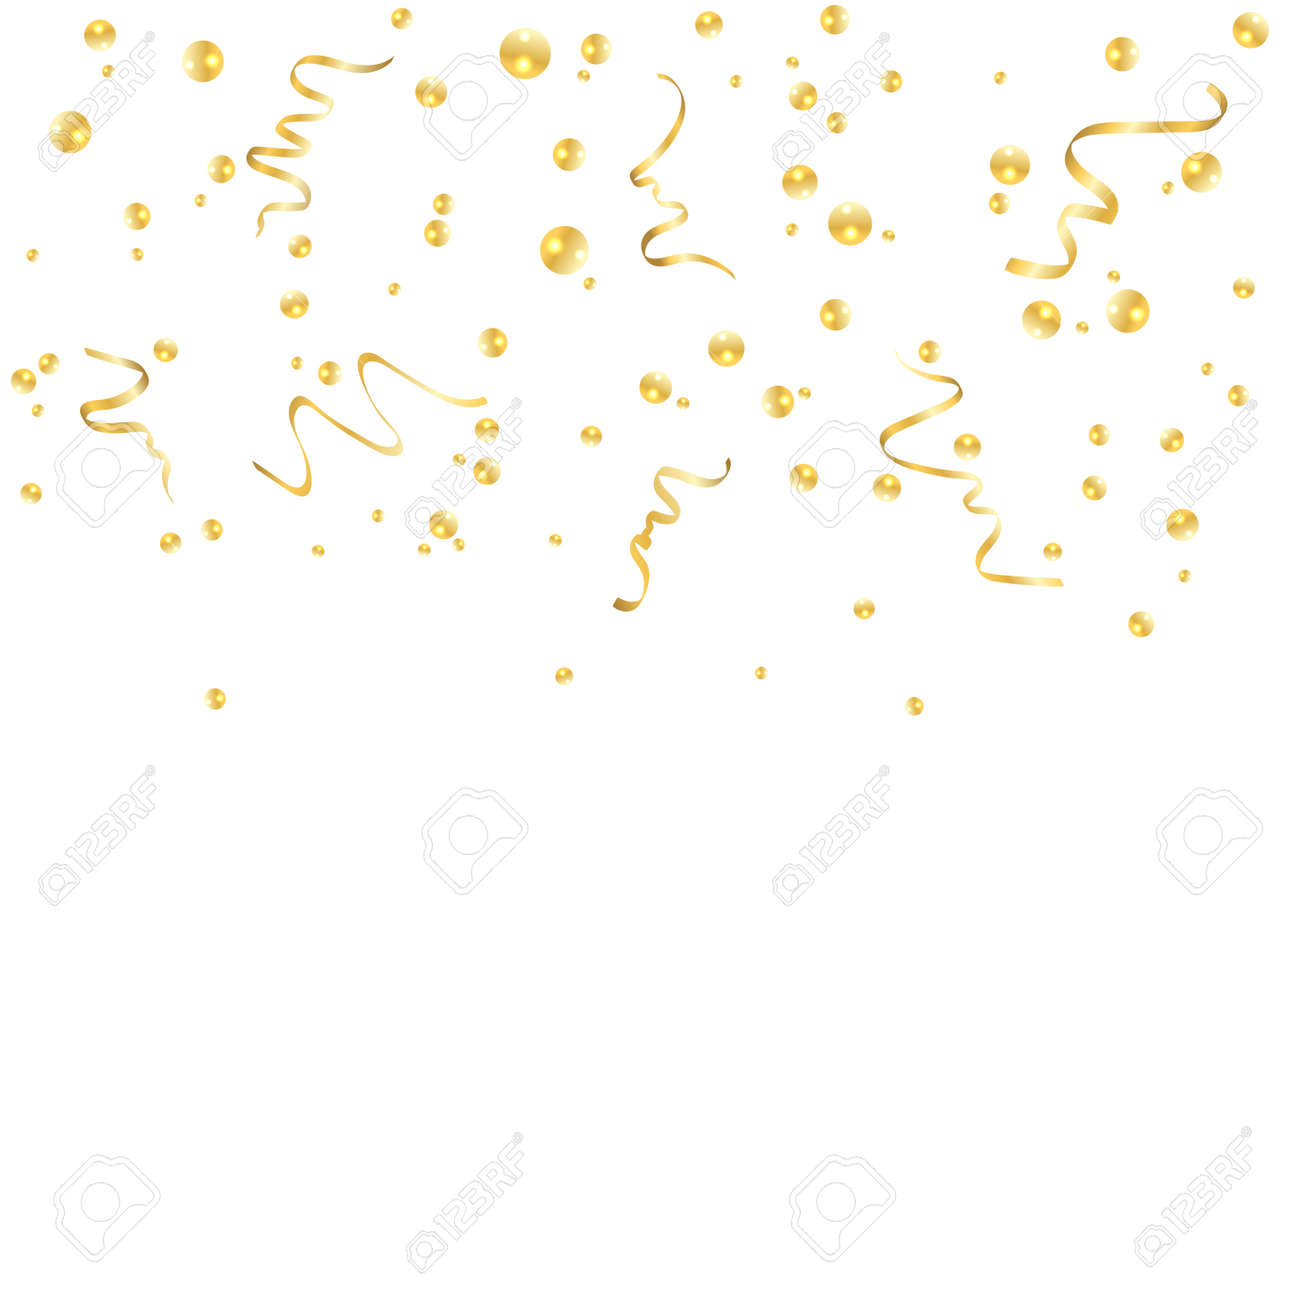 gold confetti celebration isolated on white background falling